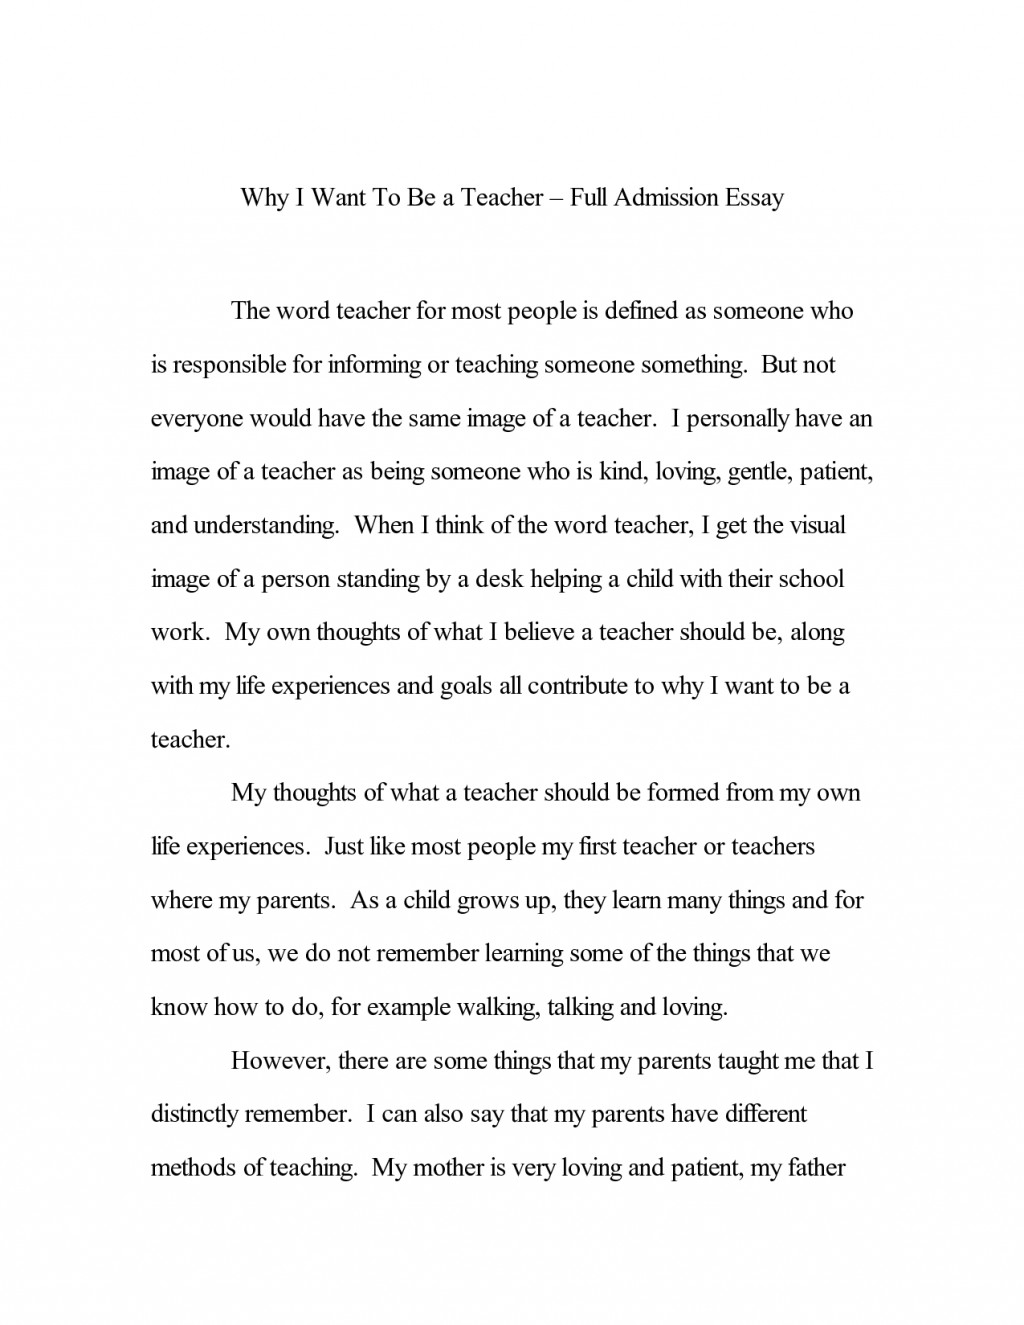 004 Writing College Application Essay Rare A How To Write Outline Tips For Entrance Large